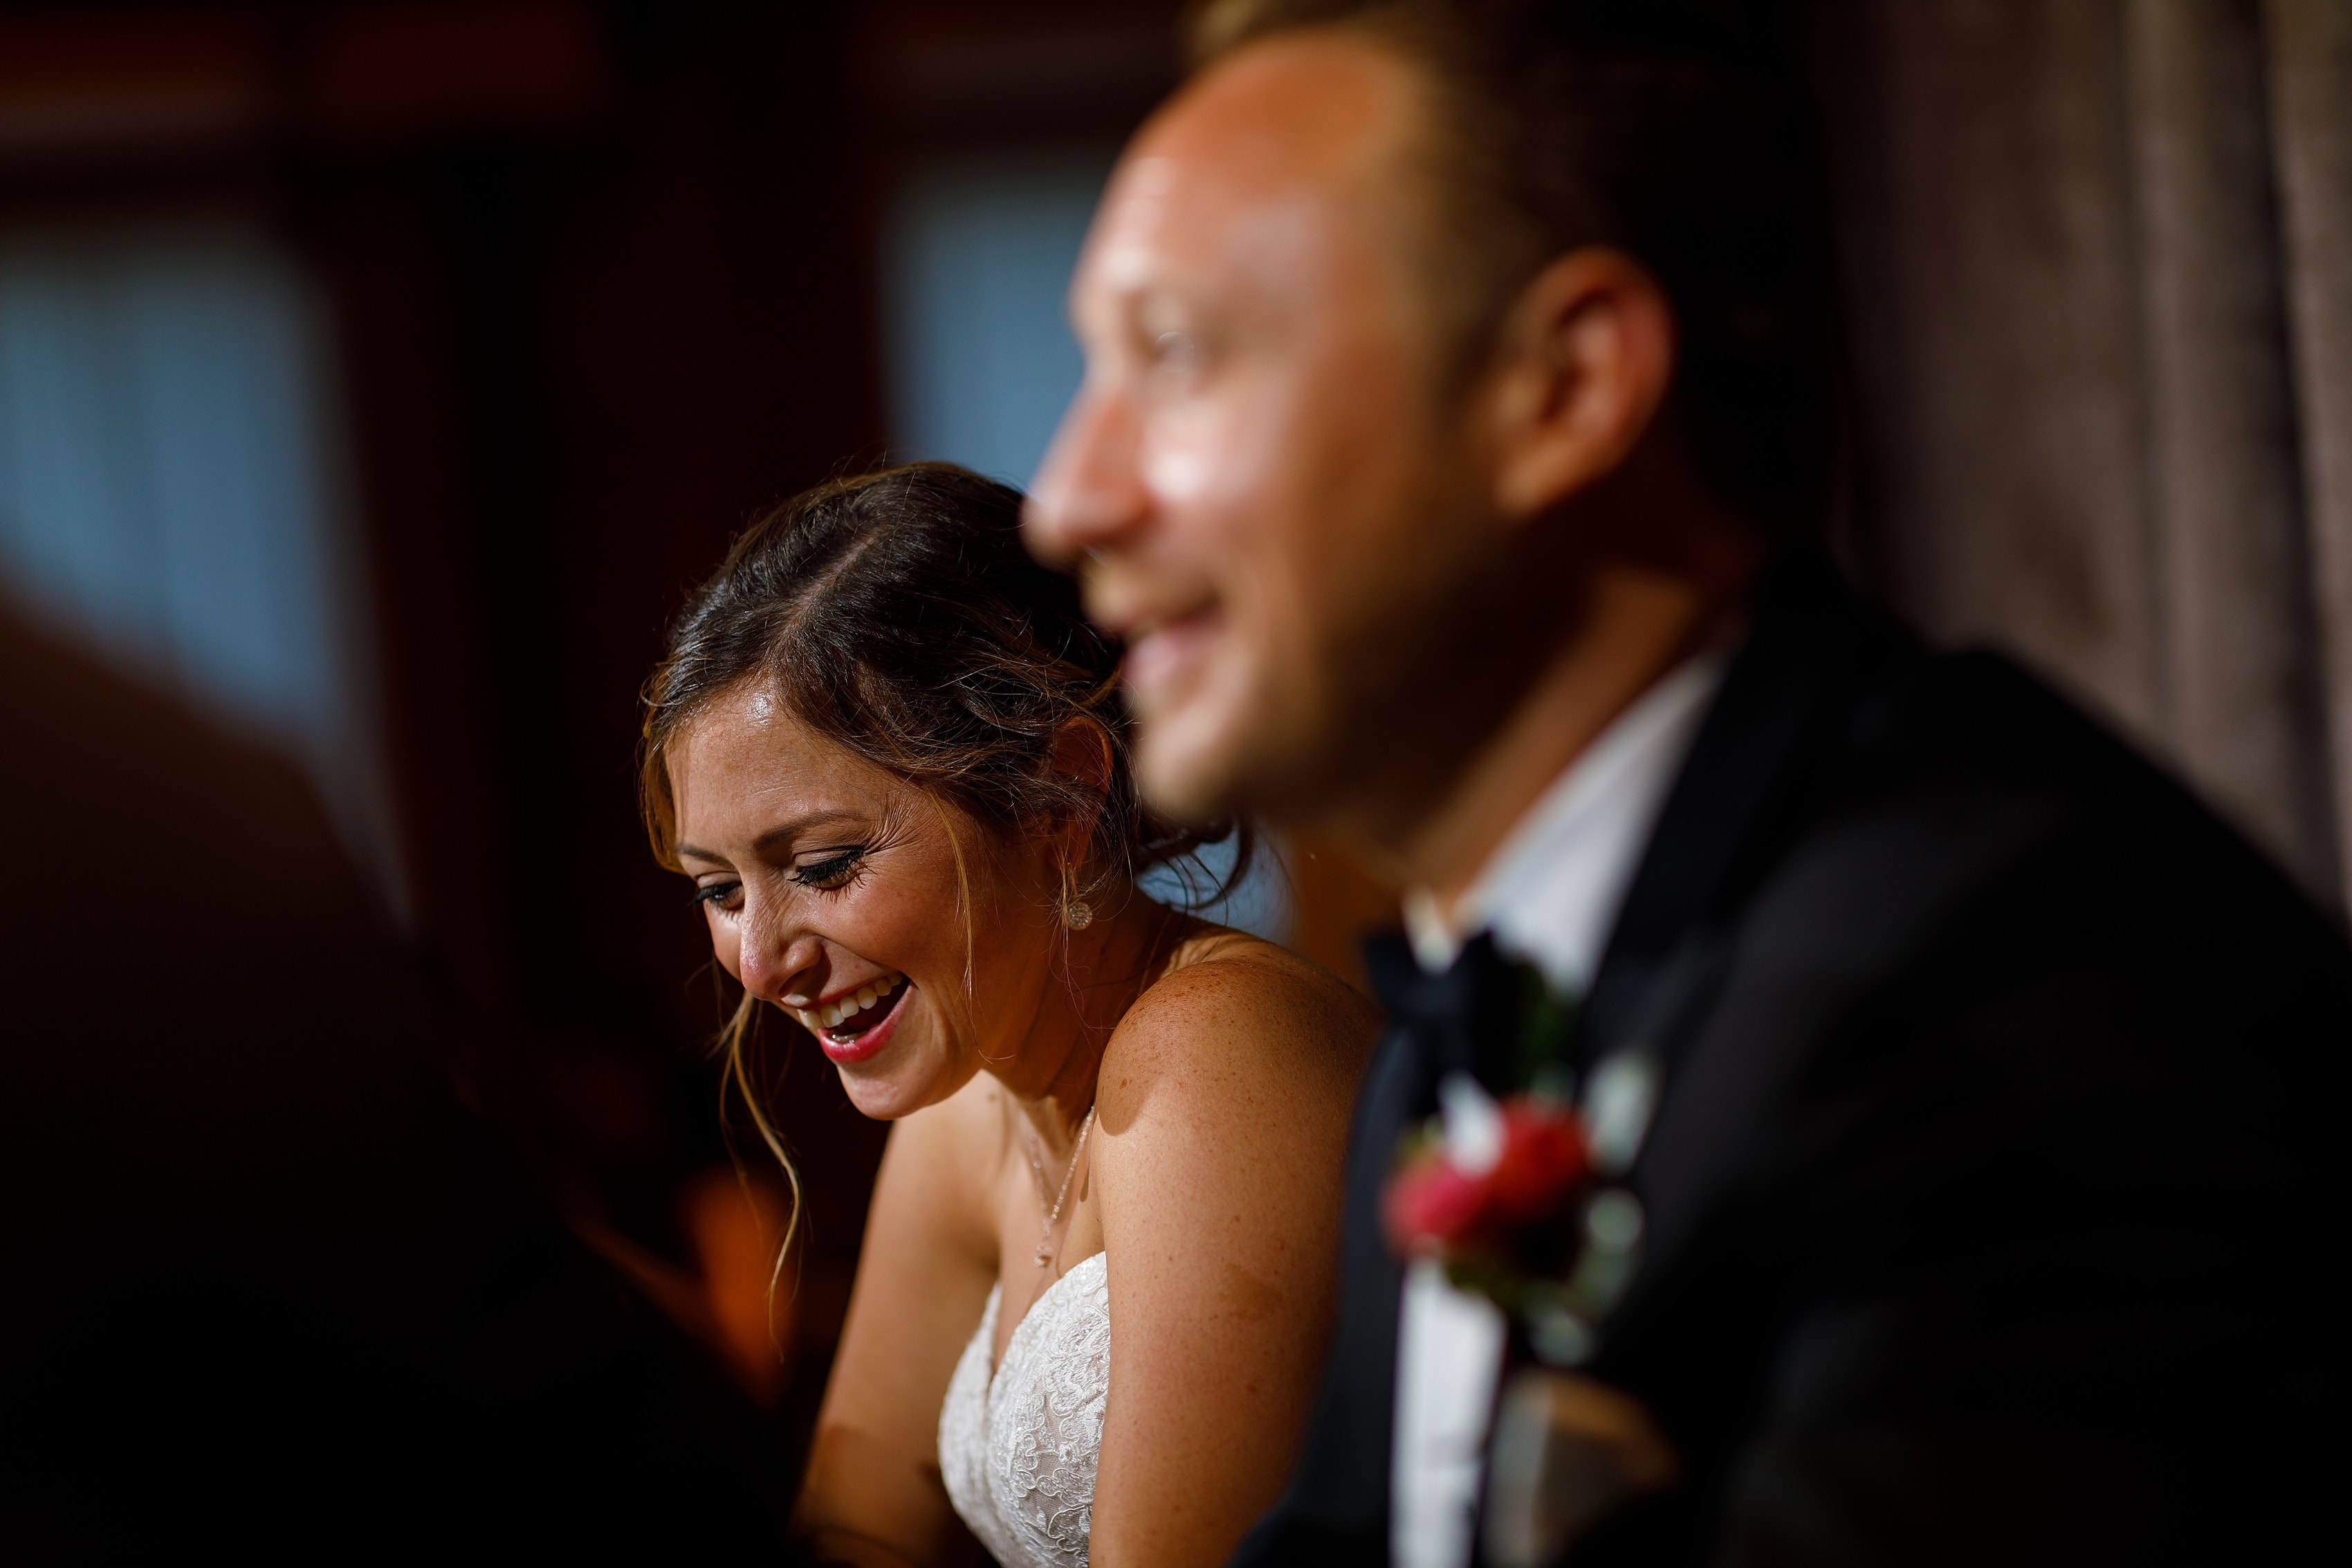 bride and groom laugh during toasts at wedding reception at Bridgeport Art Center Sculpture Garden in Chicago